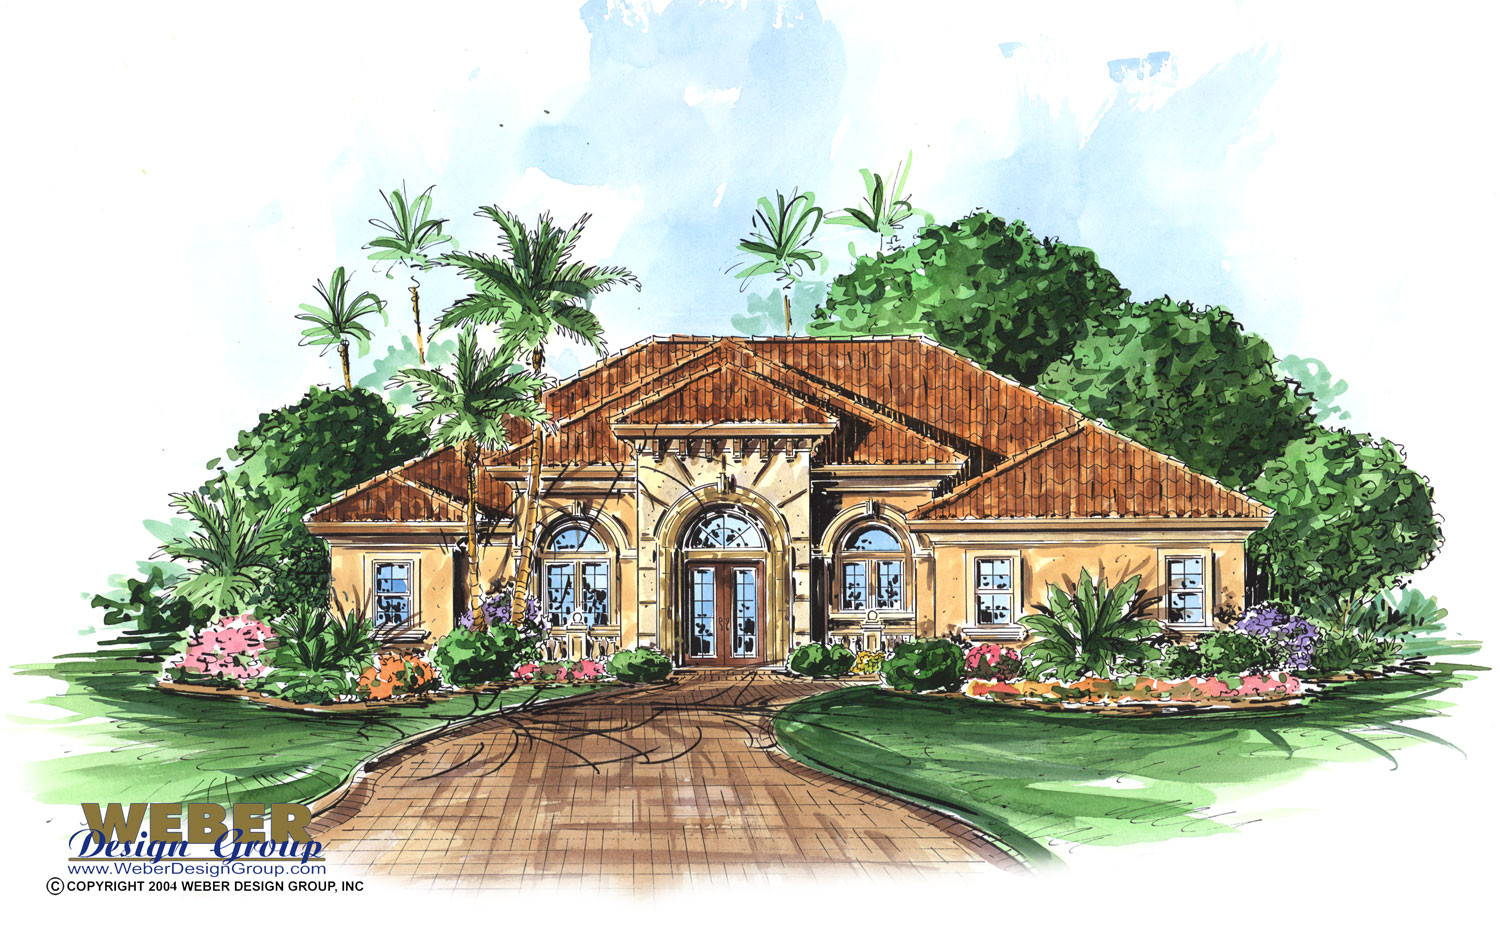 verandah home plan 3 bed bath island kitchen great room pool